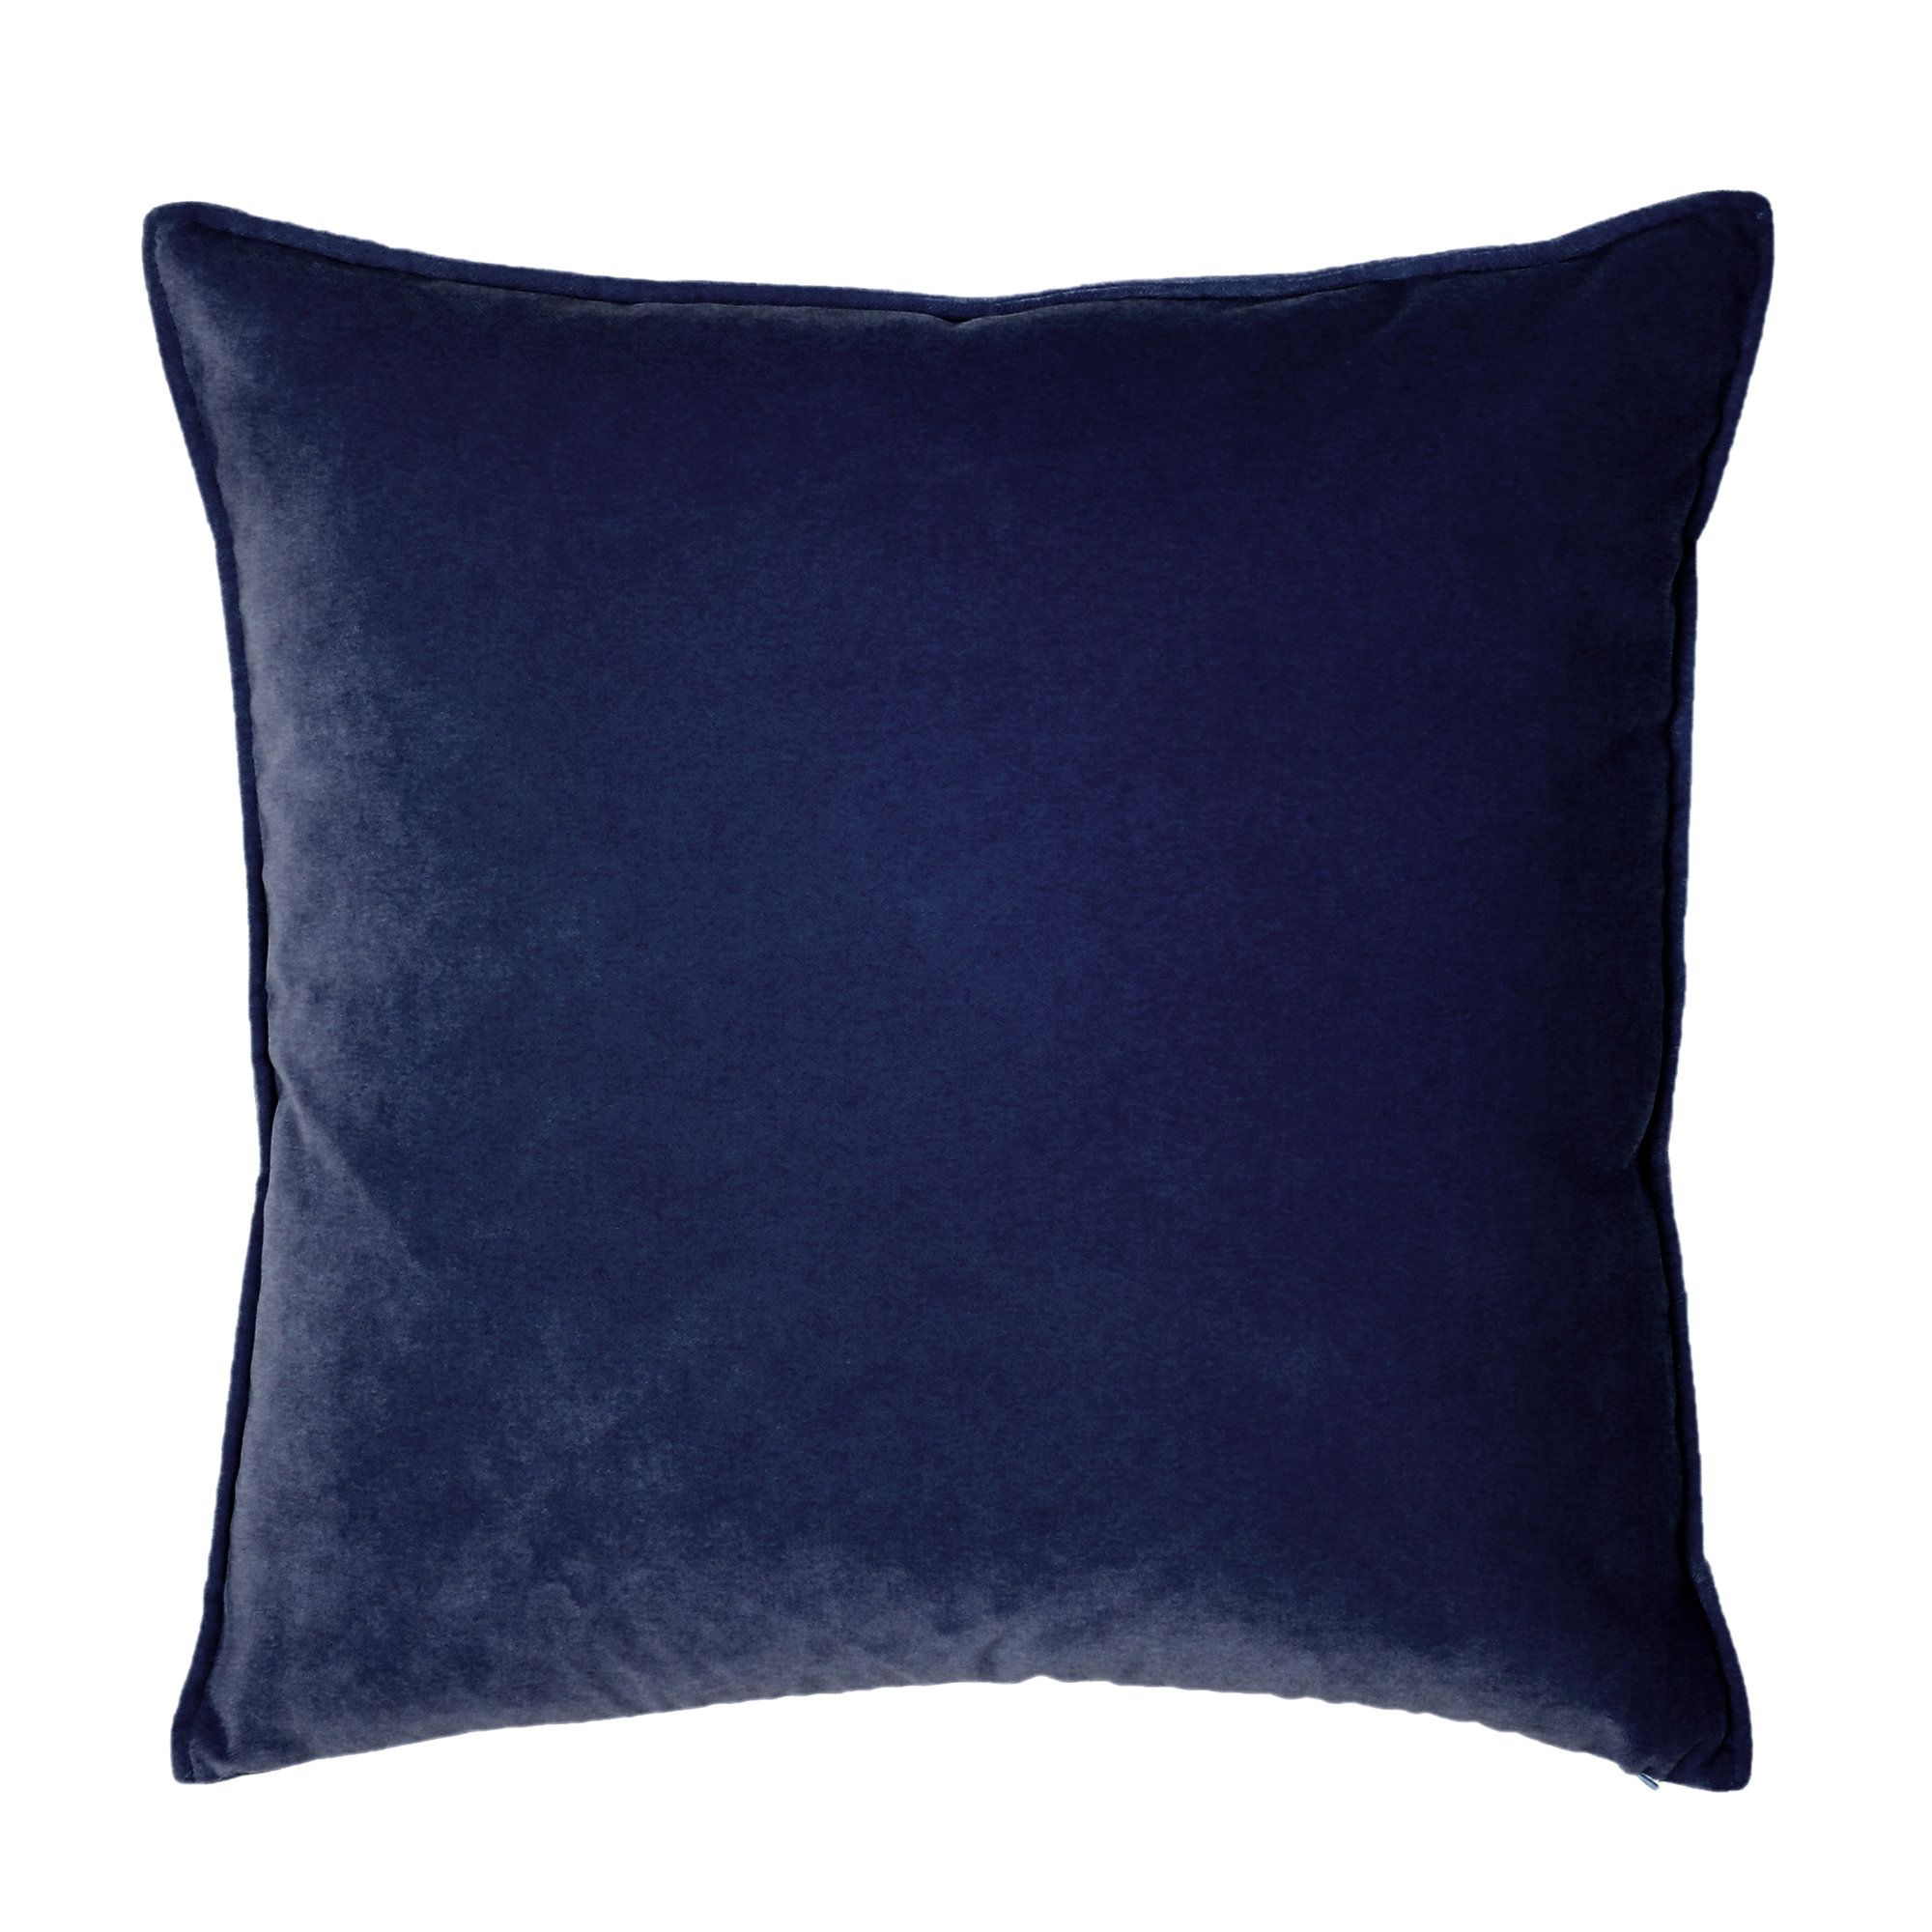 Franklin throw pillow throw pillows pillows and products